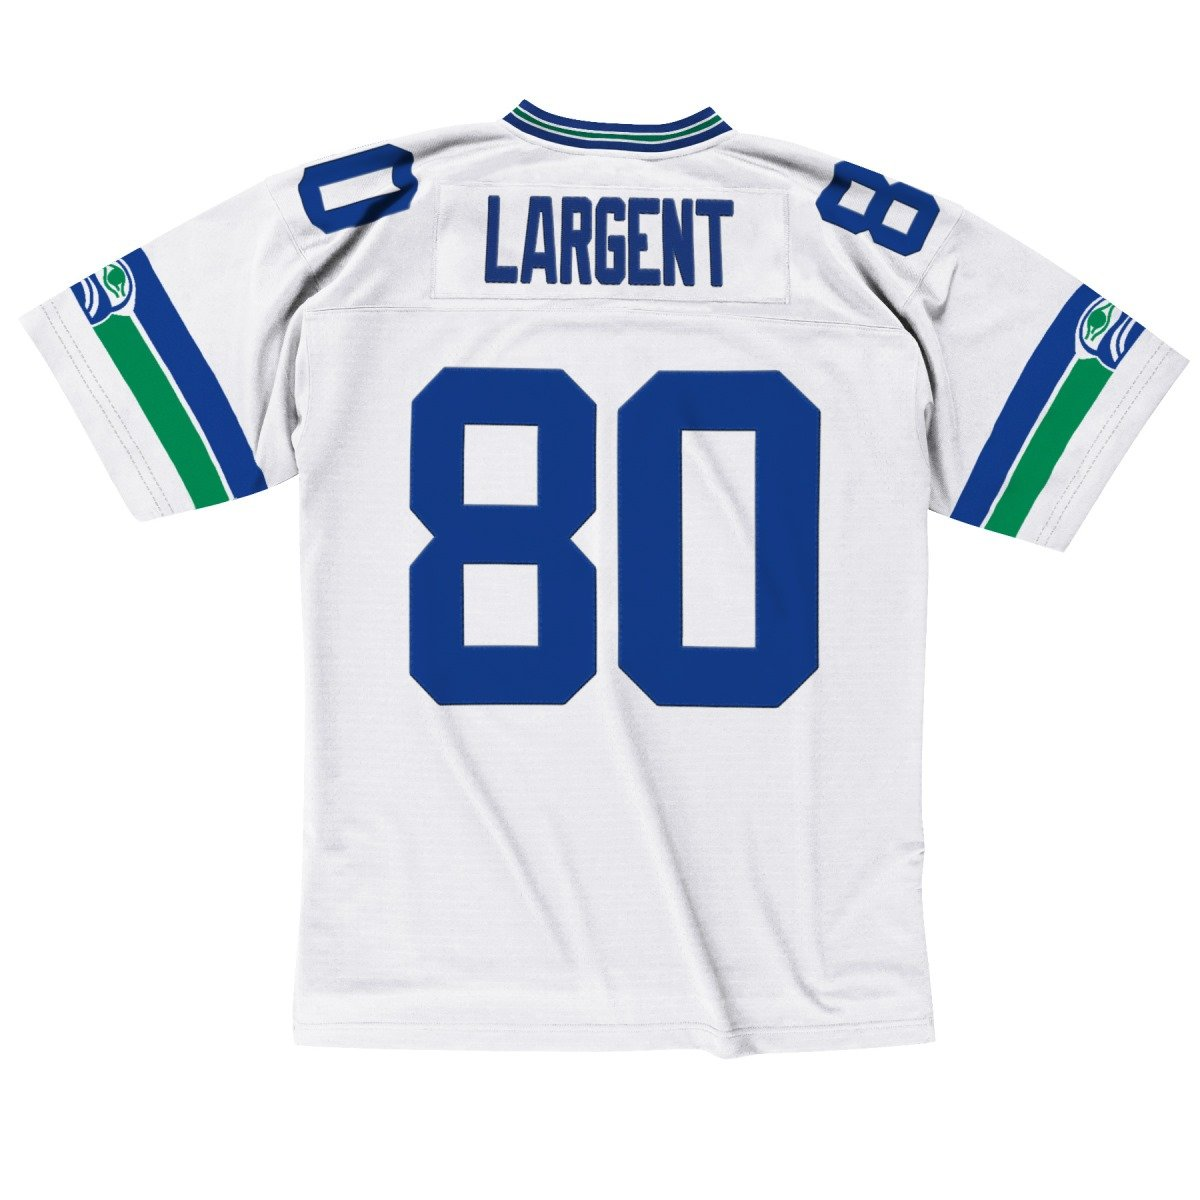 White Steve Largent Seattle Seahawks Mitchell /& Ness Throwback Premier Jersey Maglia